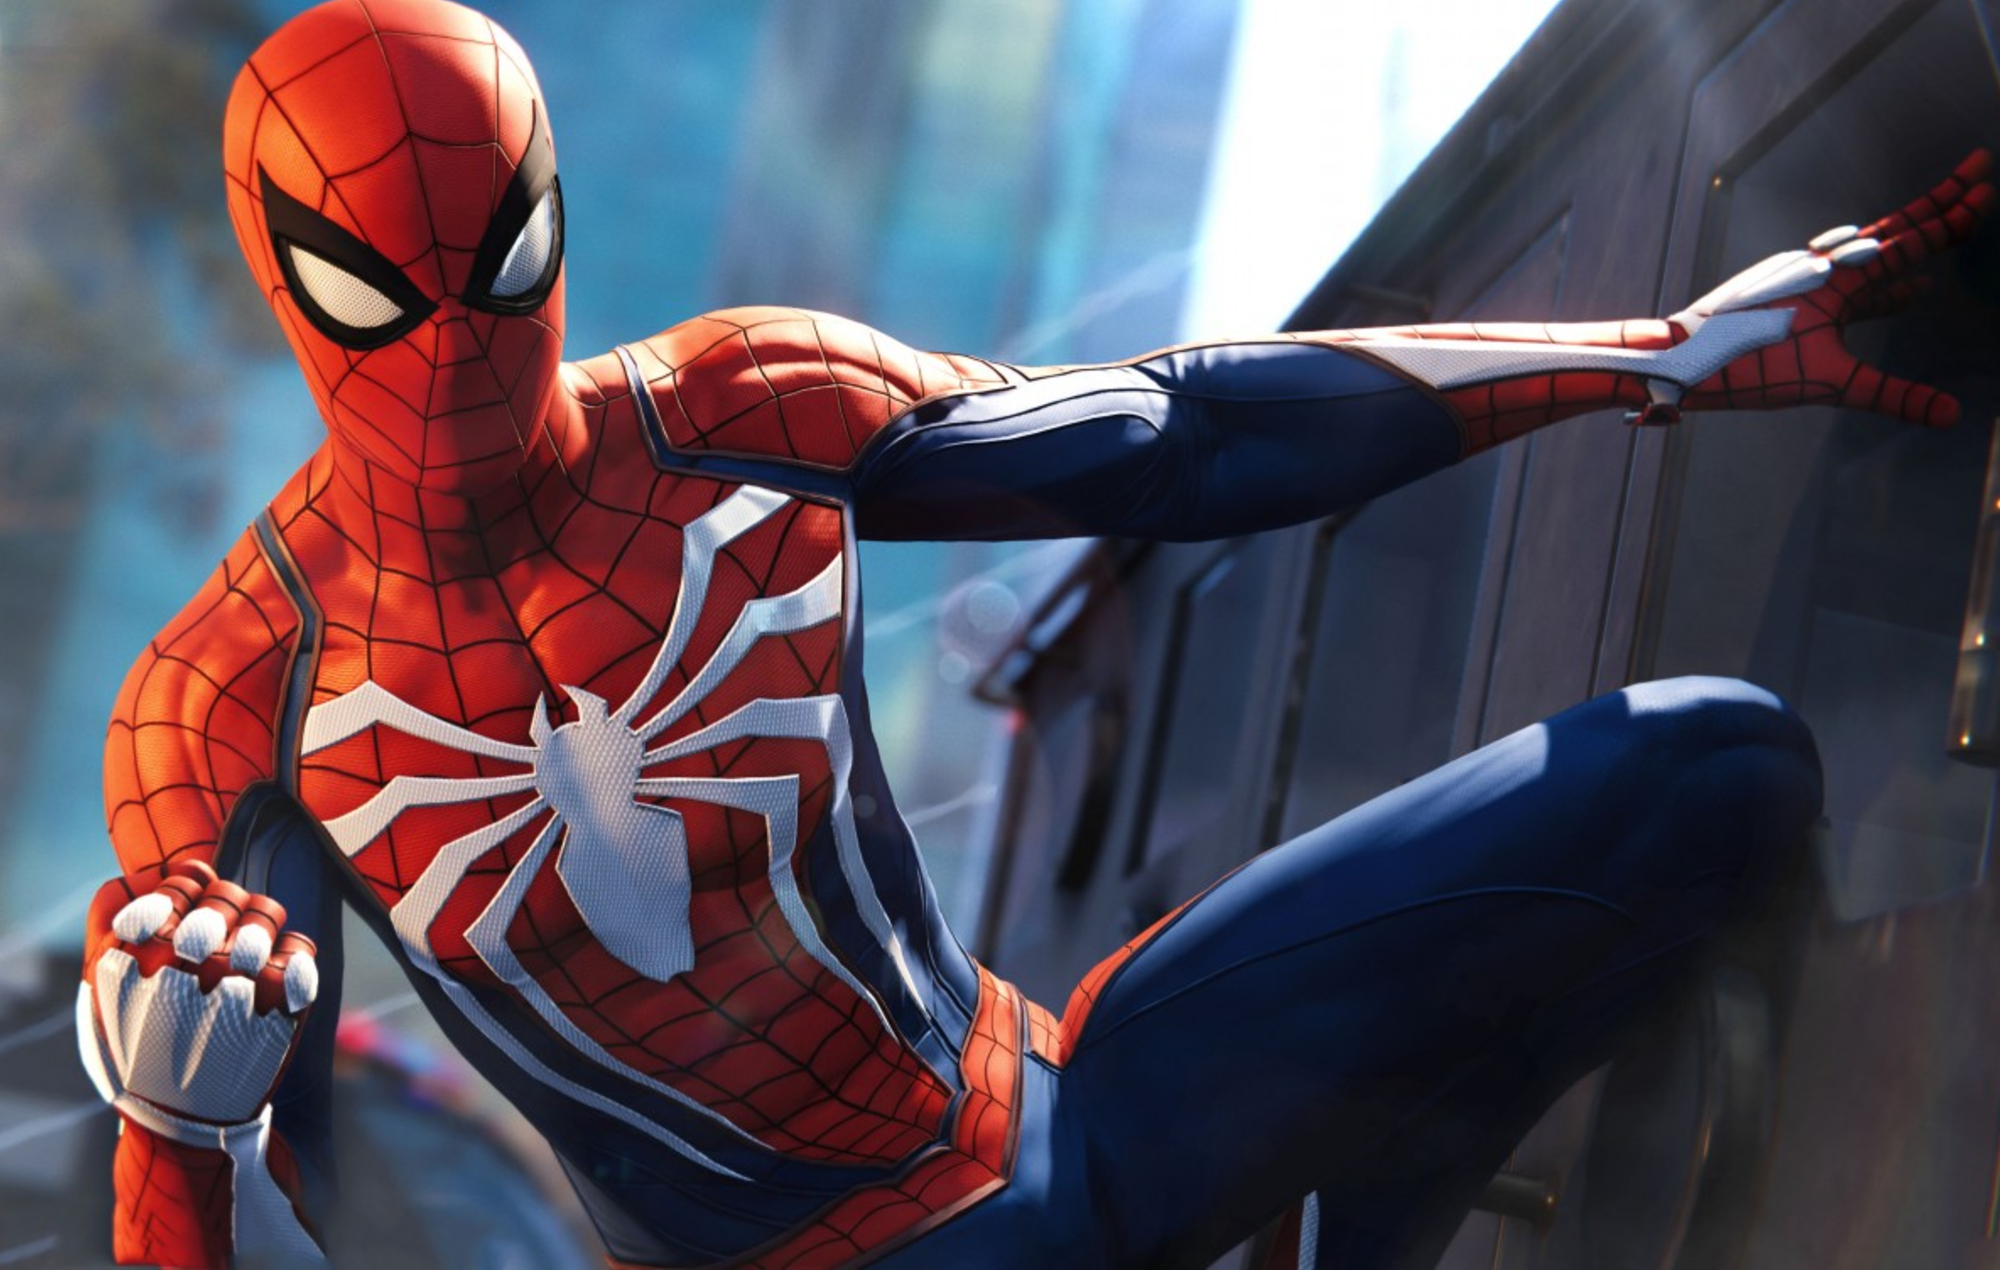 spider-man ps5 file size